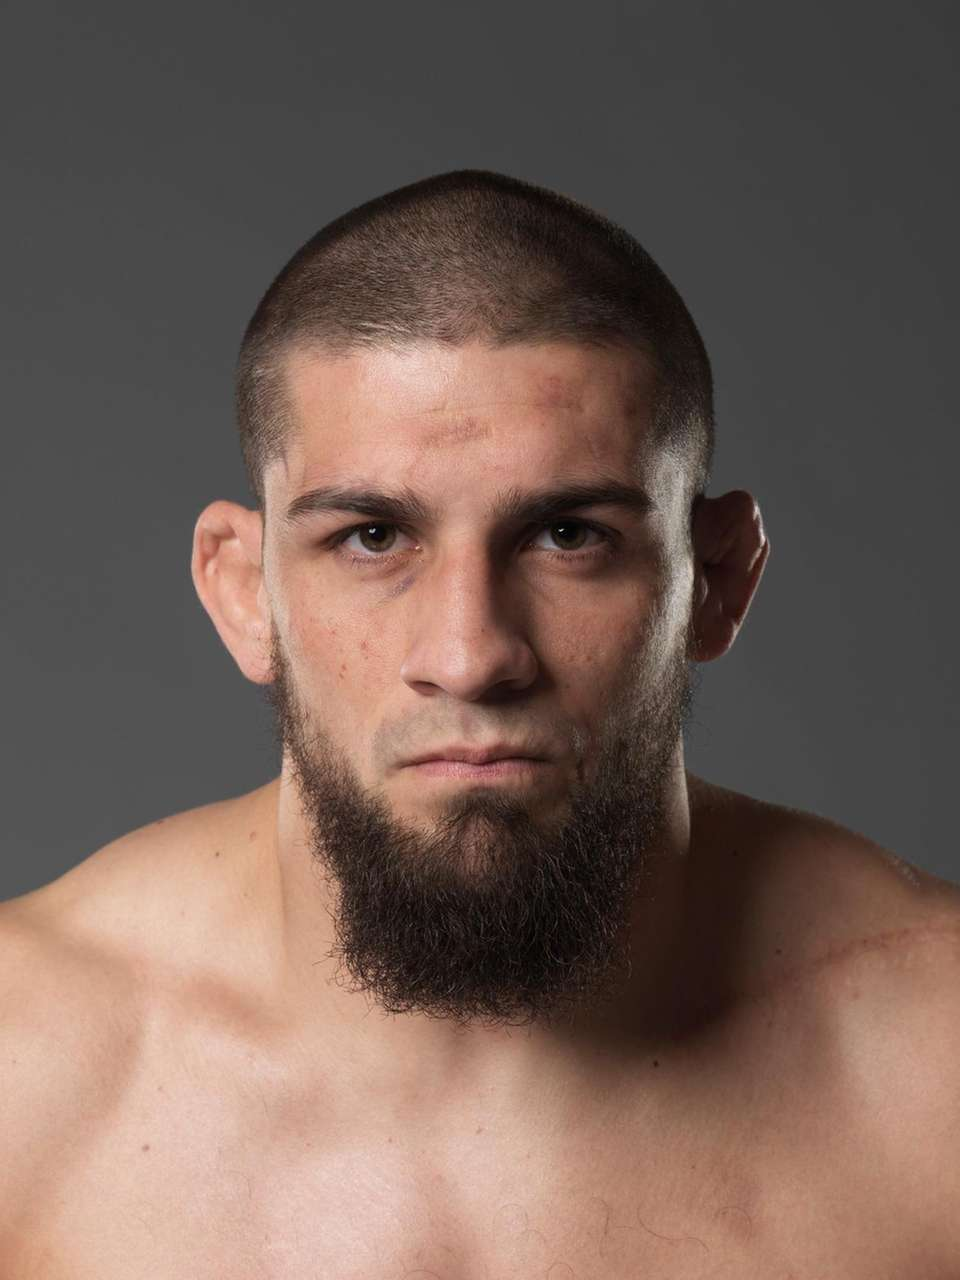 Season 11 champion, middleweight: Court McGee, the former